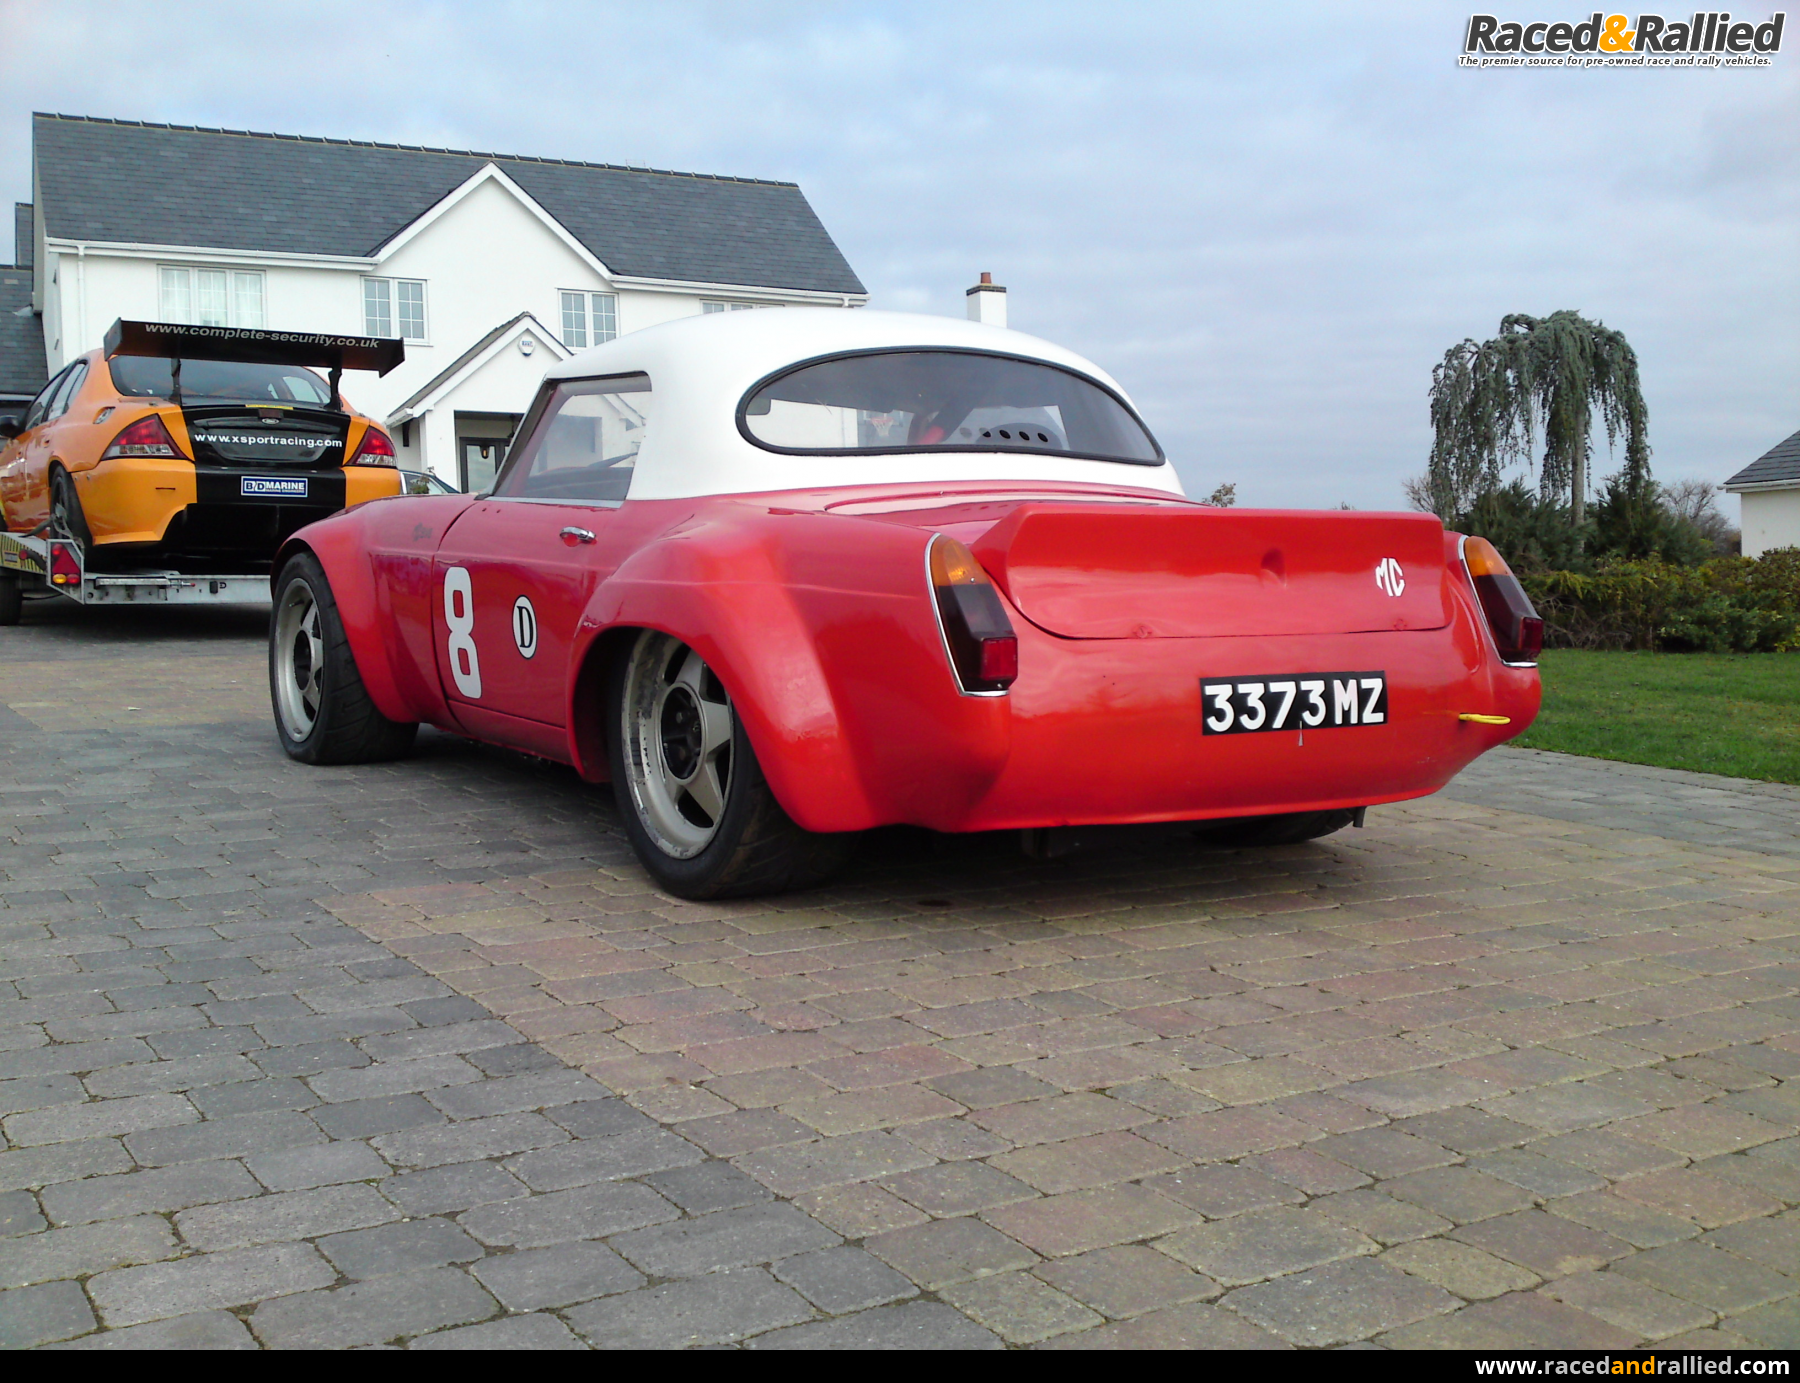 1966 MGB V8 Roadster | Race Cars for sale at Raced & Rallied | rally ...